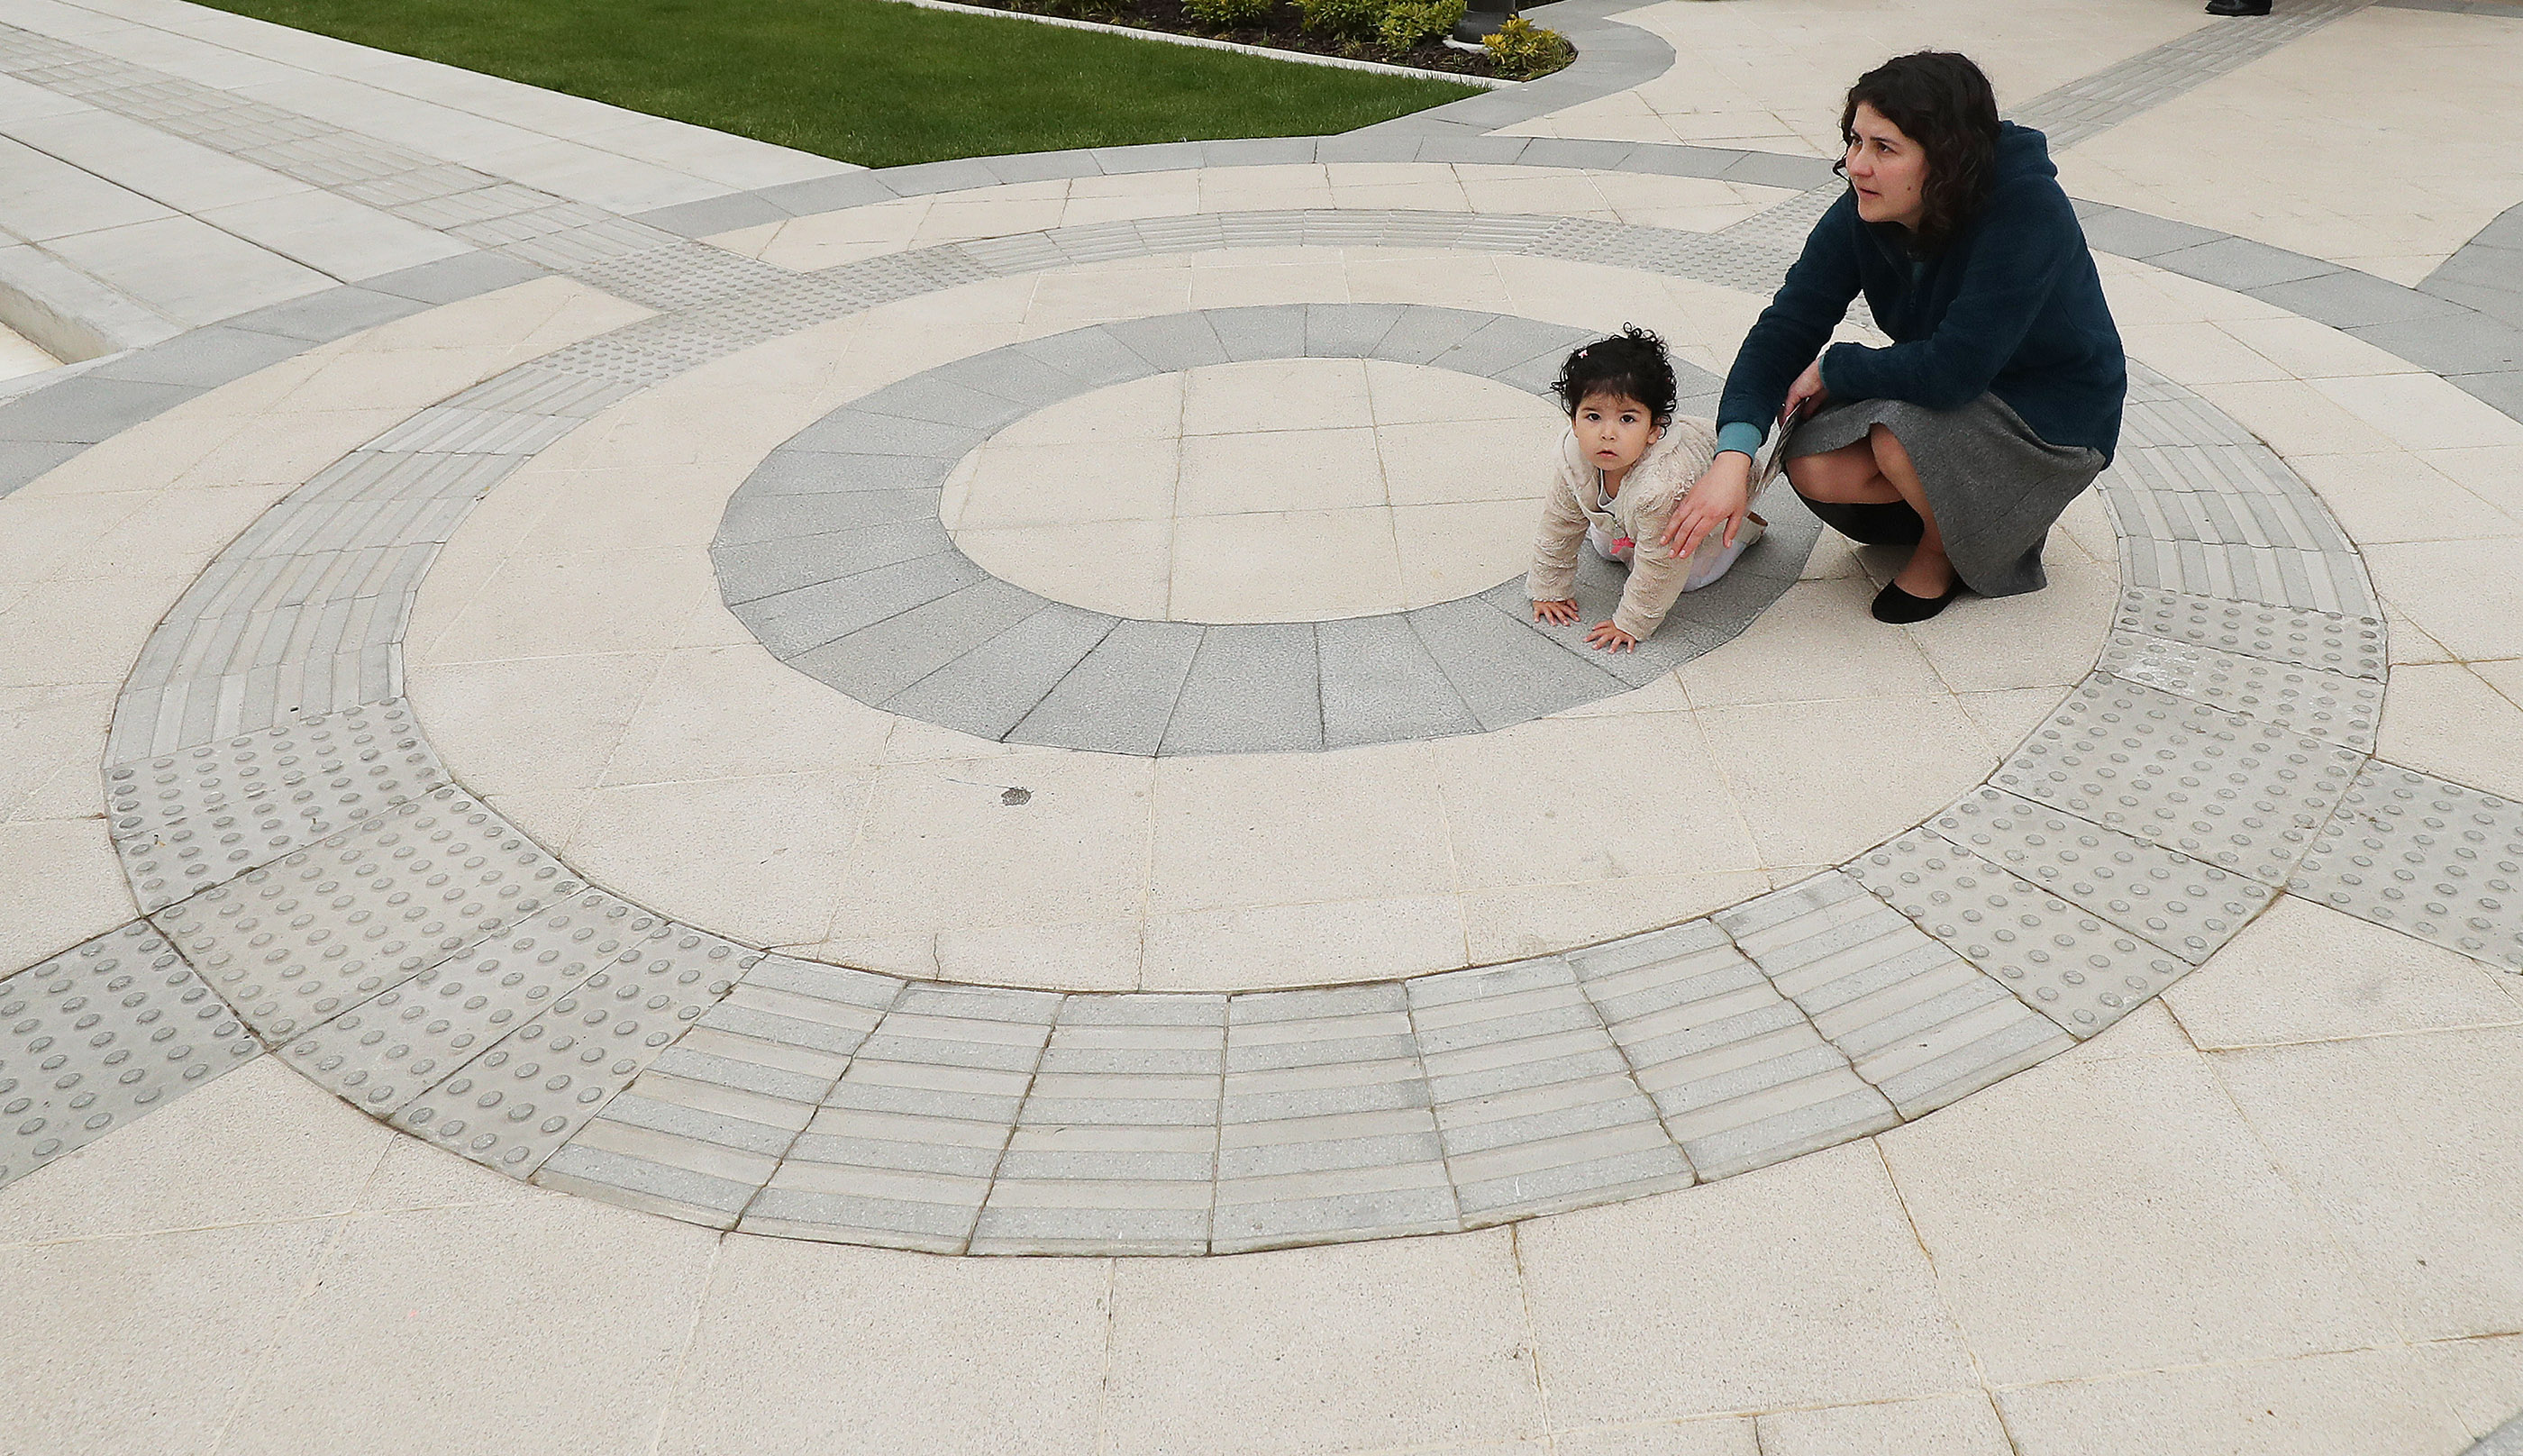 Aracely Gomez plays with her baby, Elena Gonzalez, during the dedication of the Concepcion Chile Temple in Concepcion, Chile, on Sunday, Oct. 28, 2018.